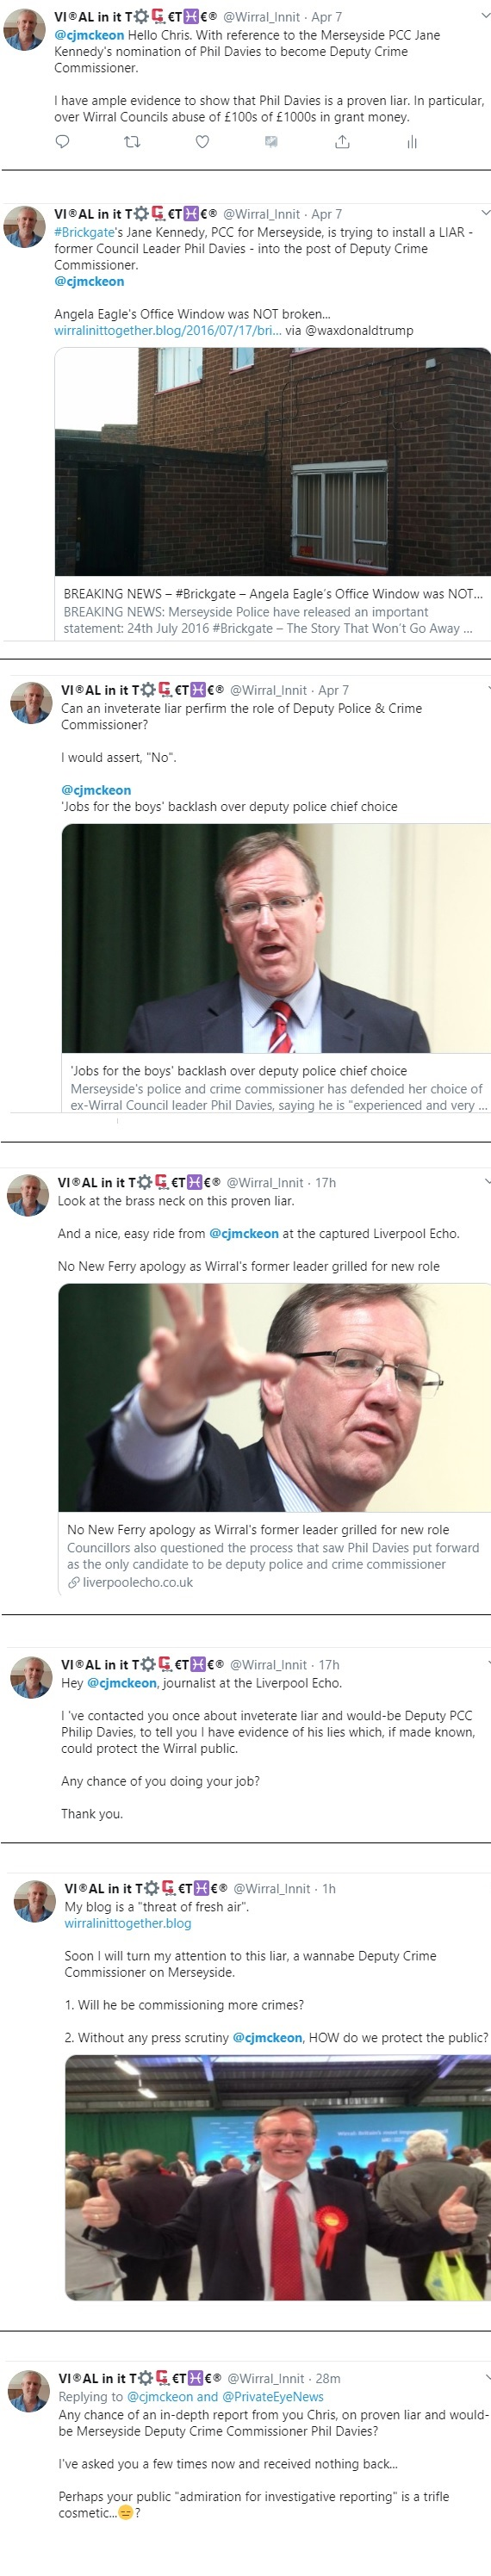 phil davies and cjmckeon echo tweets police crime commissioner